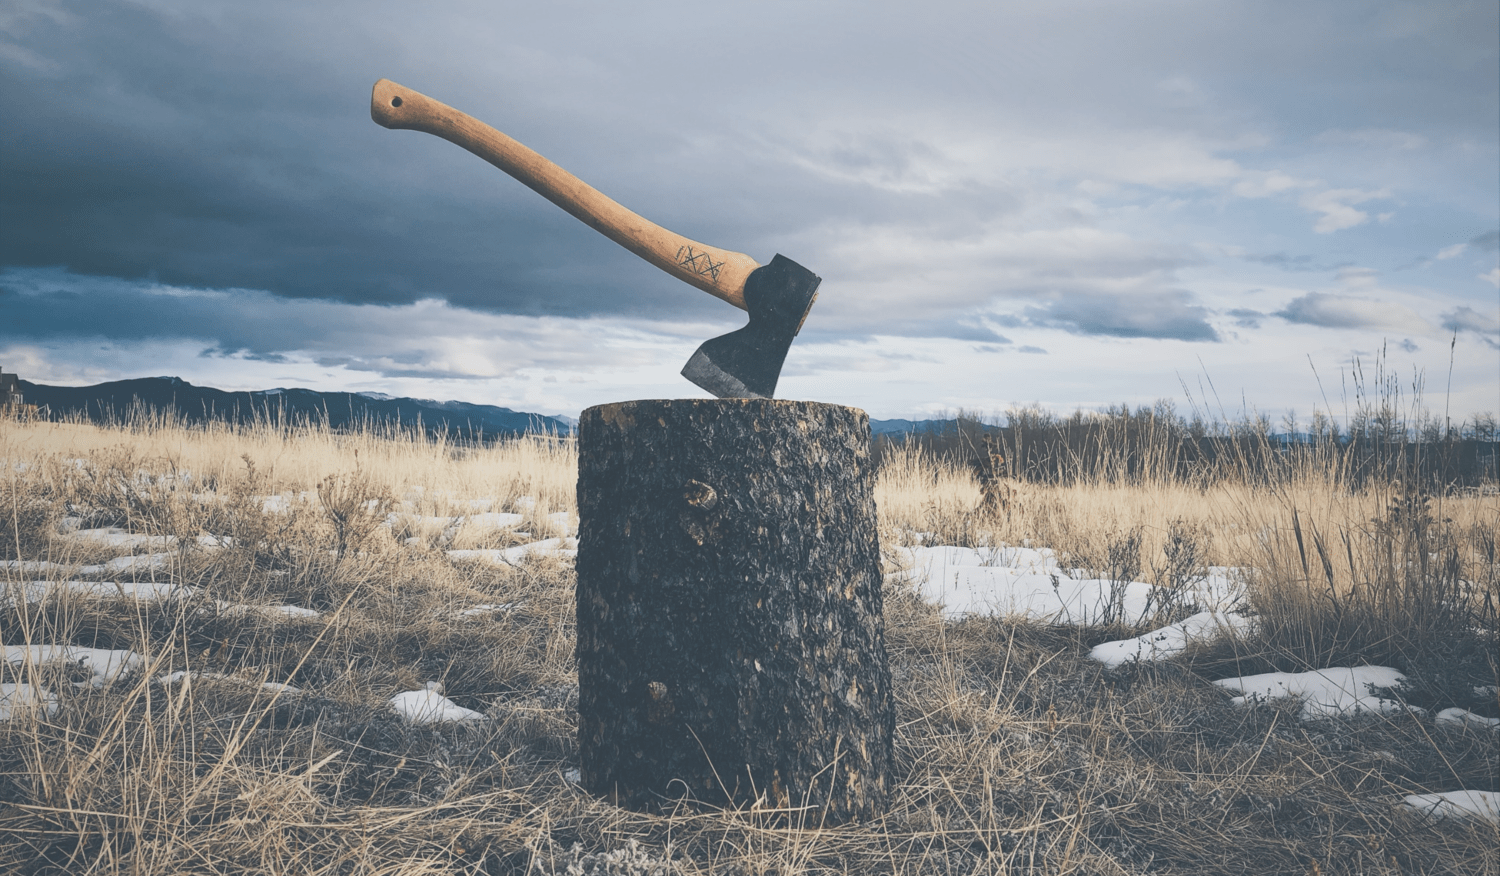 Wooden axe lodged in a tree stump in a snowy field surrounded by mountains